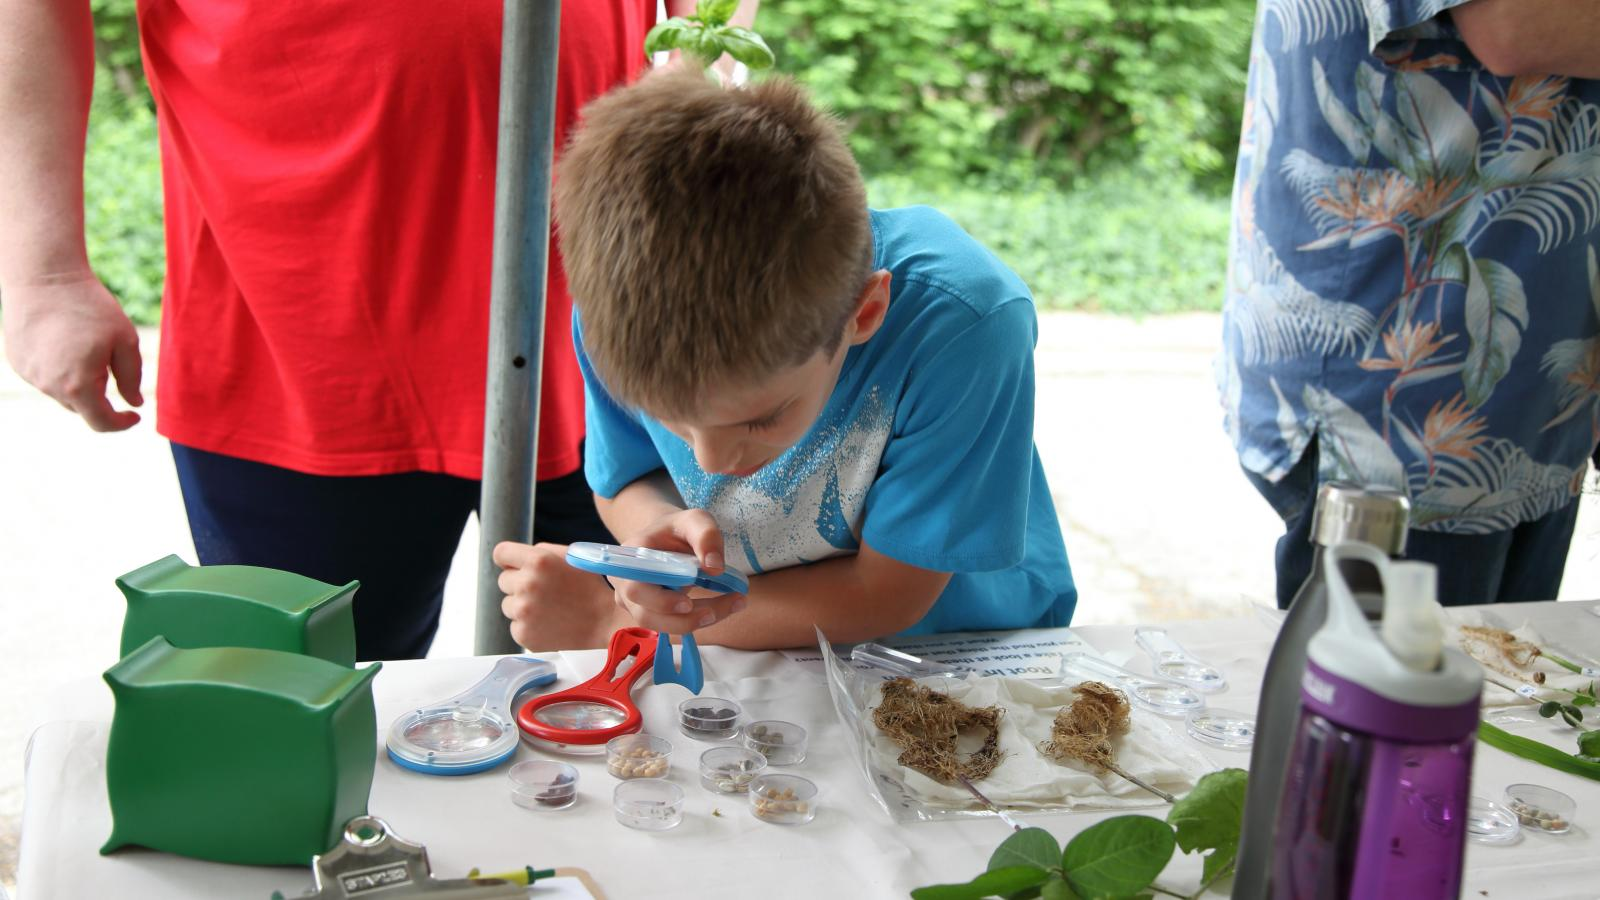 A young person explores plants at WestFest 2018